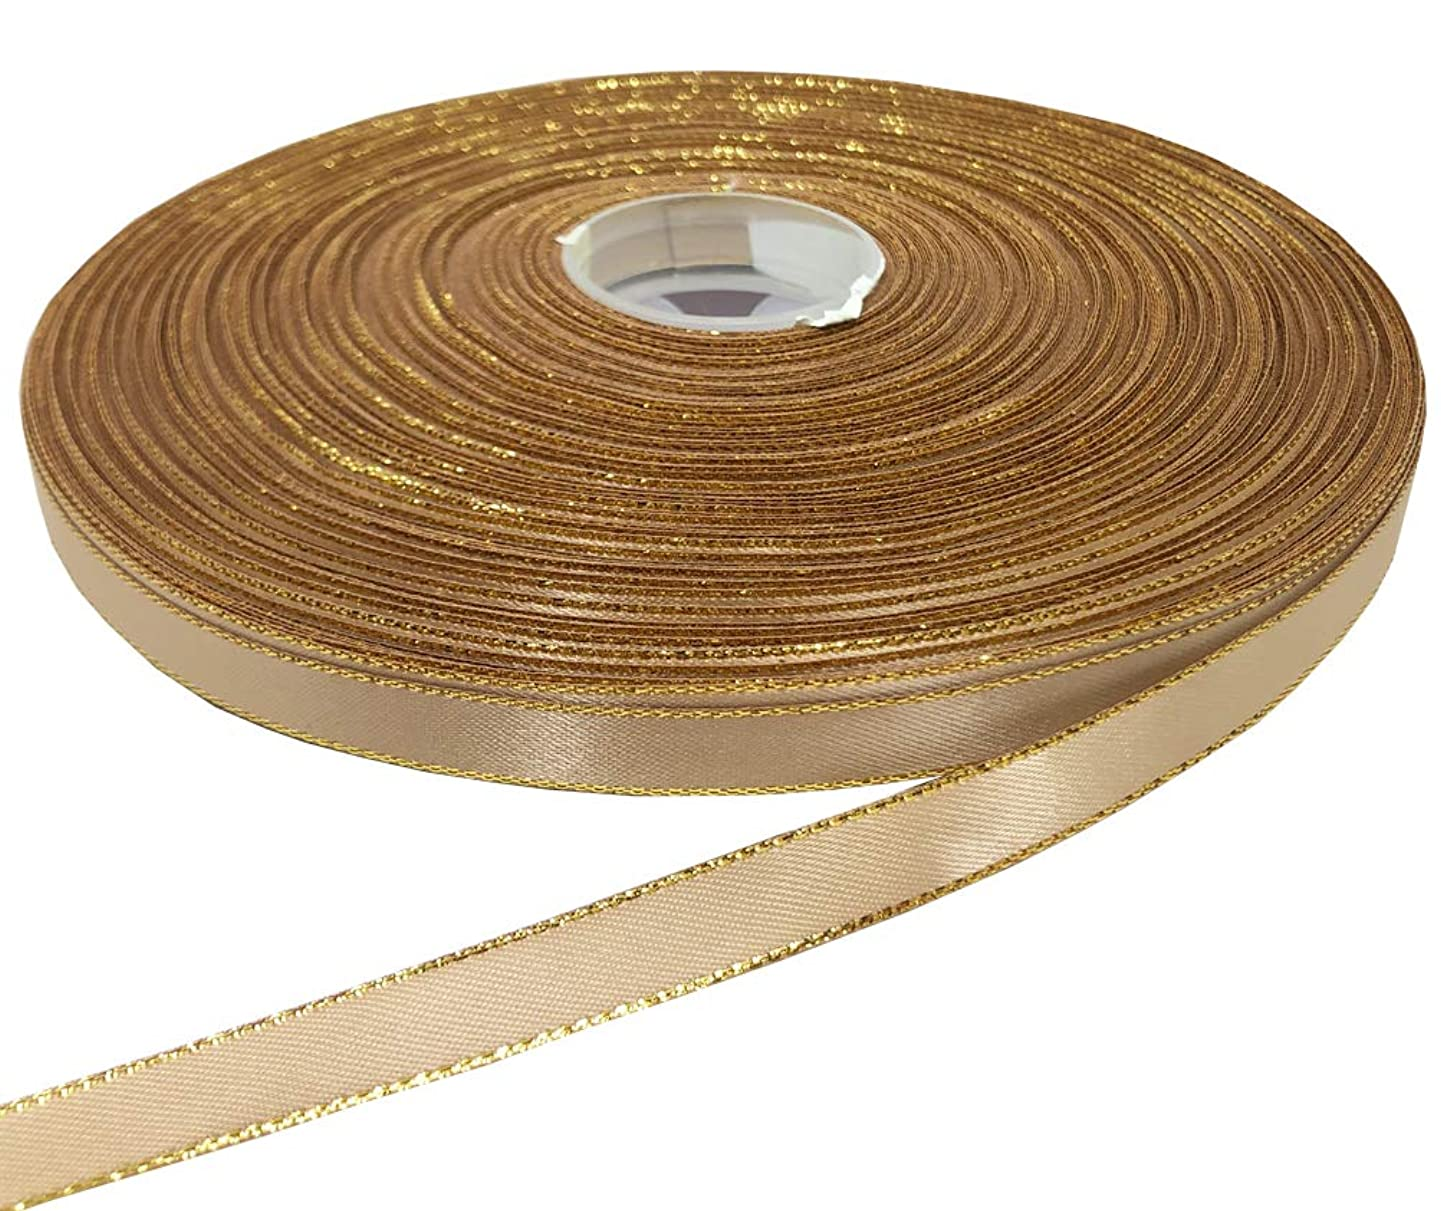 PartyMart 3/8 inch Satin Ribbon with Golden Edges, 100 yd, Tan